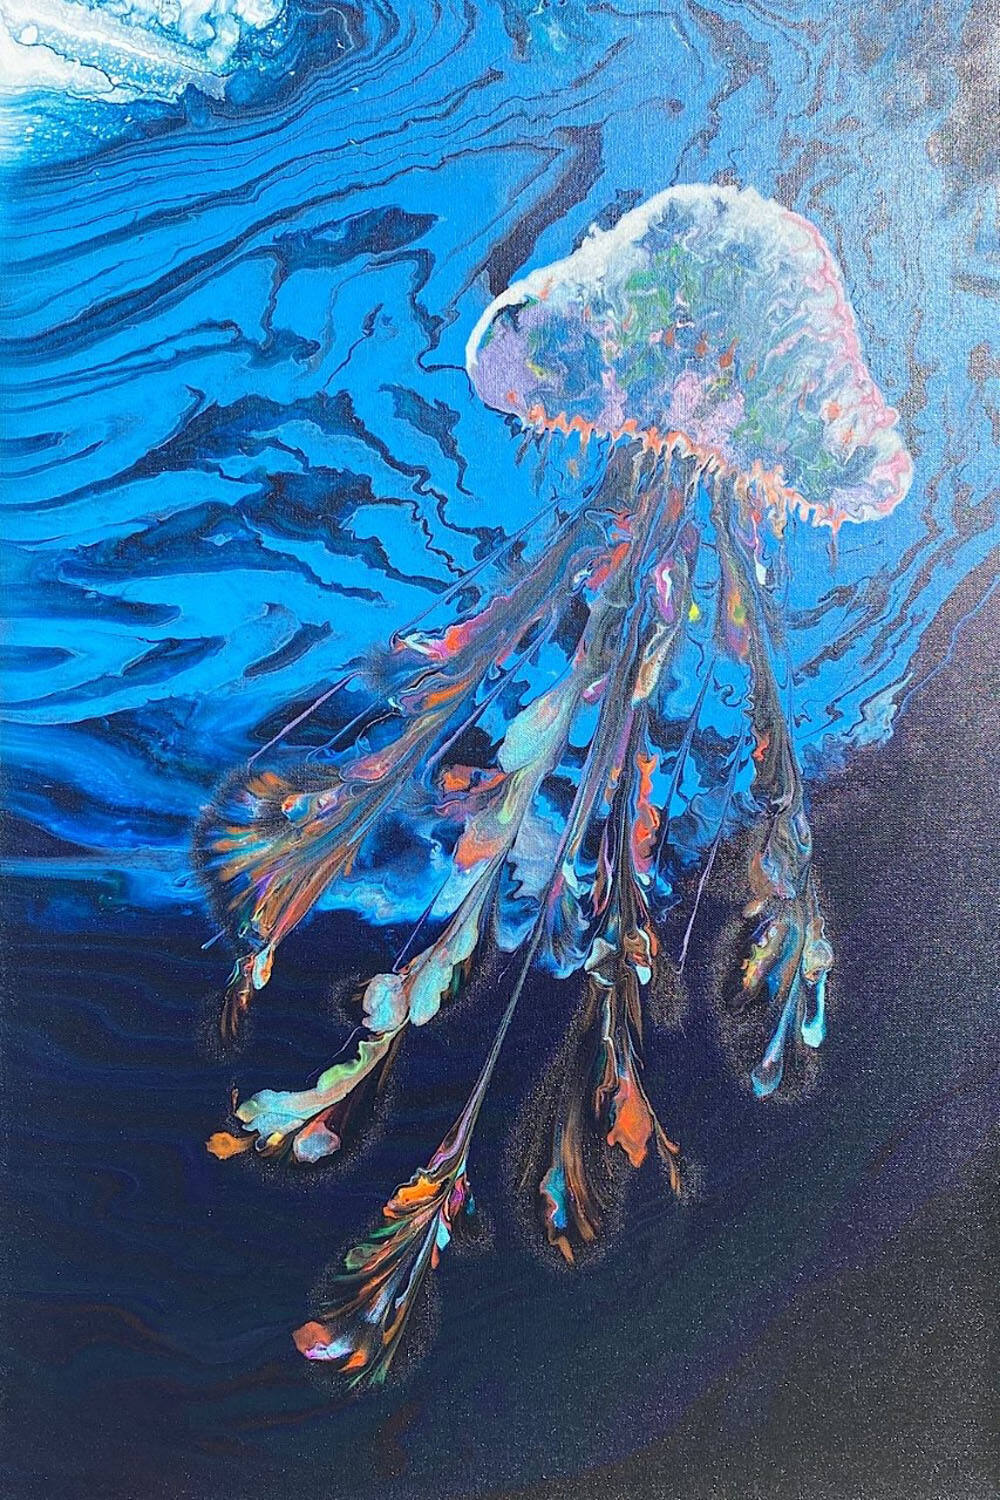 """""""Night Jellyfish"""" by Doyle Christensen will be one of the works displayed Sunday by Artstanding at the Gundlach Bundschu Winery in Sonoma. (Cathleen Francsico)"""